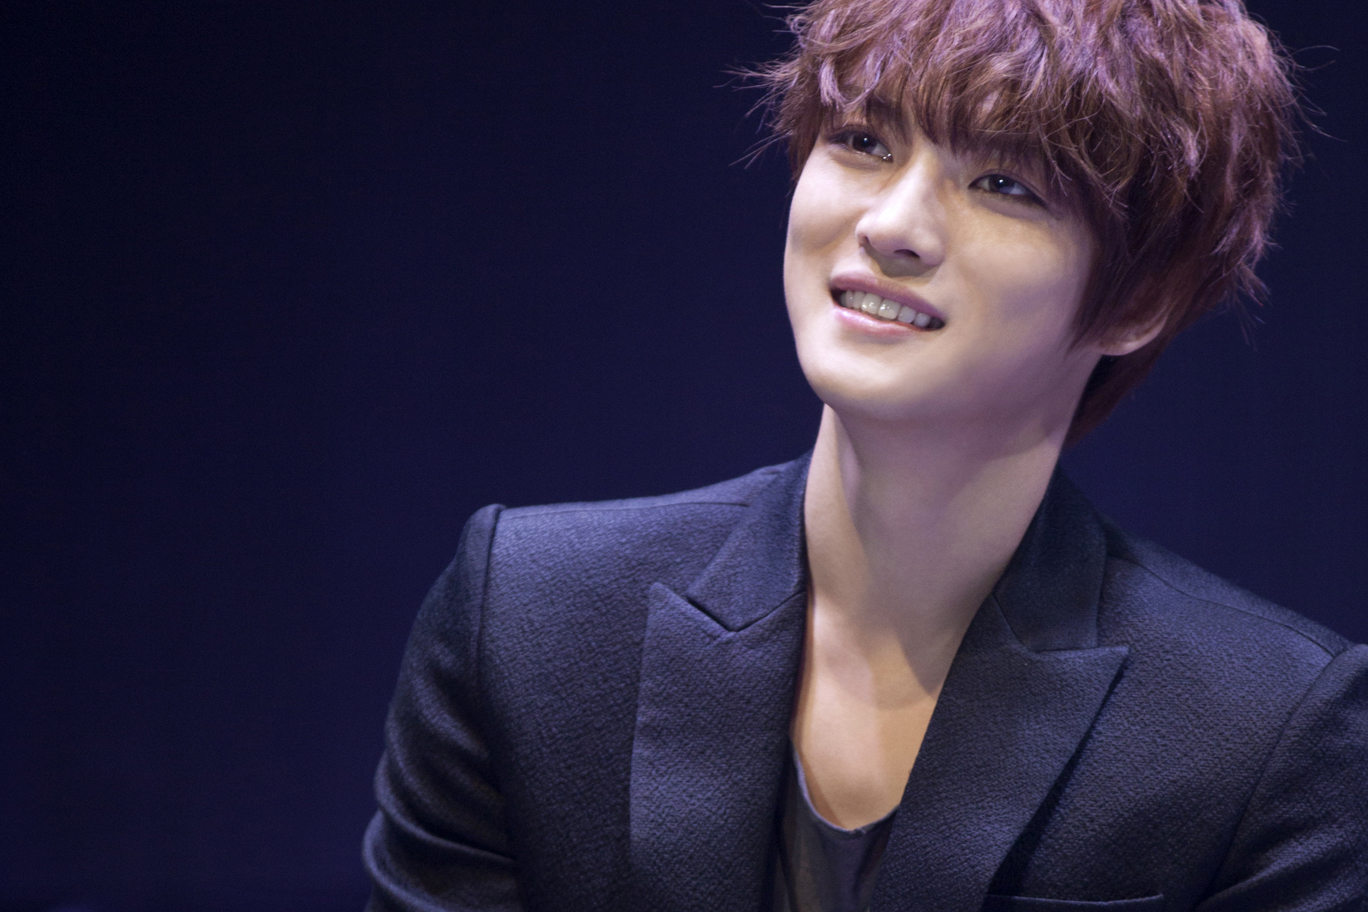 JYJ's Jae Joong Successfully Wraps Up Fan Meeting Tour in Vietnam